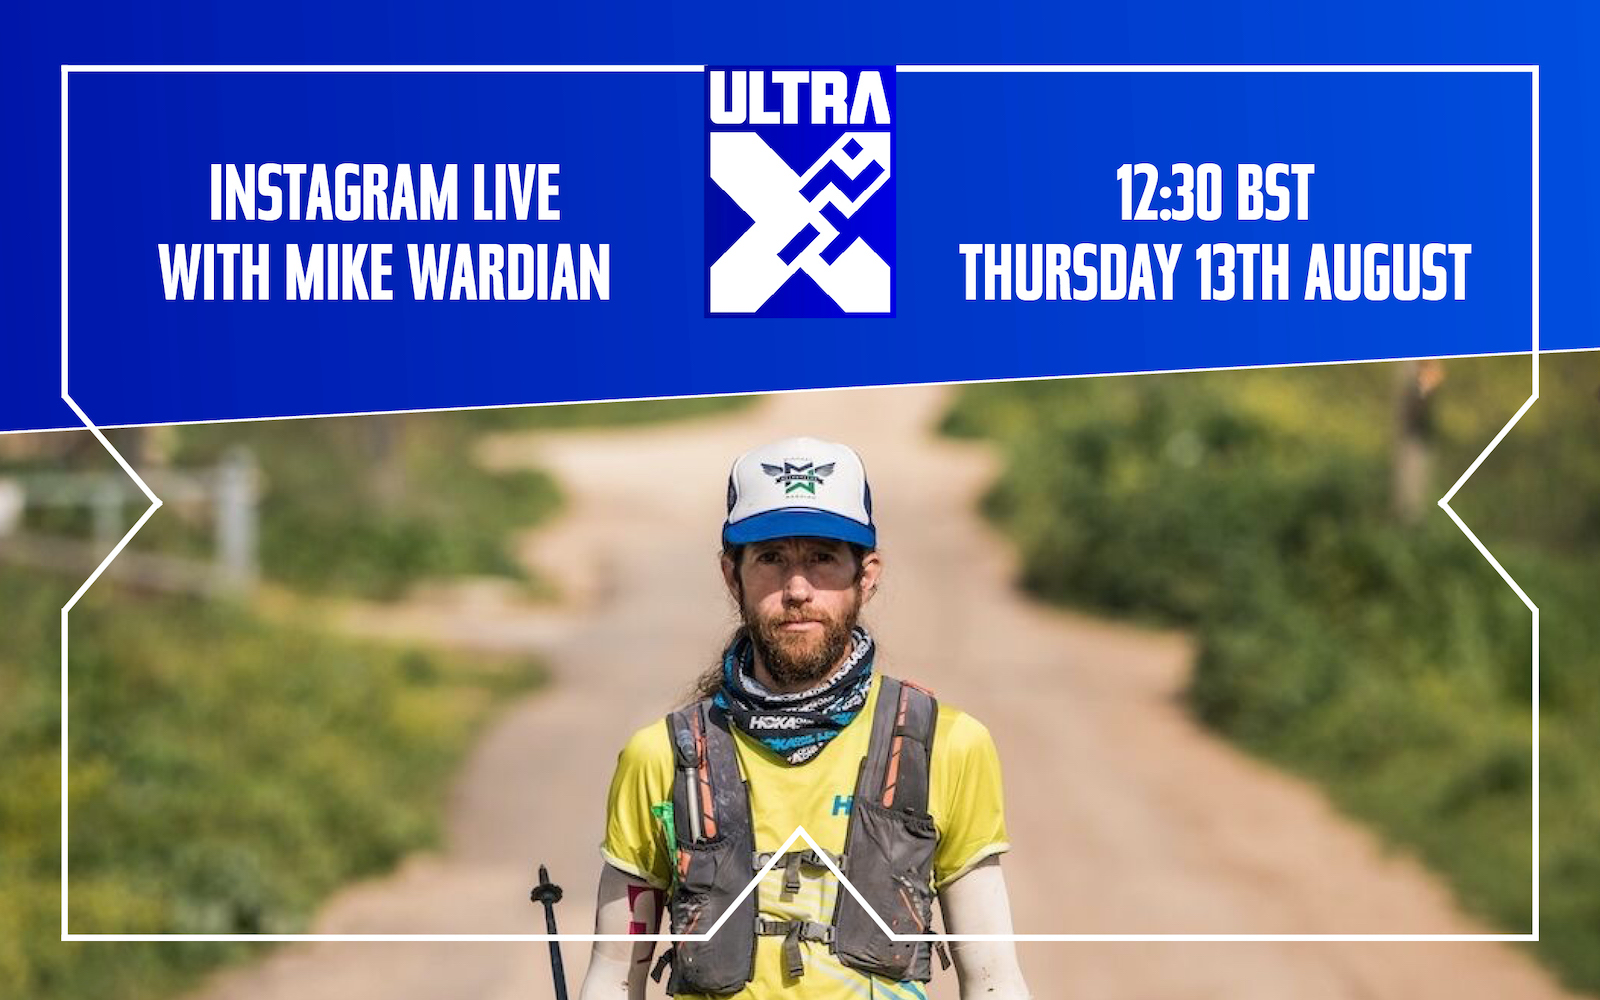 Ins­tagram Live With Ultra Run­ner Mike War­d­i­an: How To Pre­pare For Tech­nic­al Trails